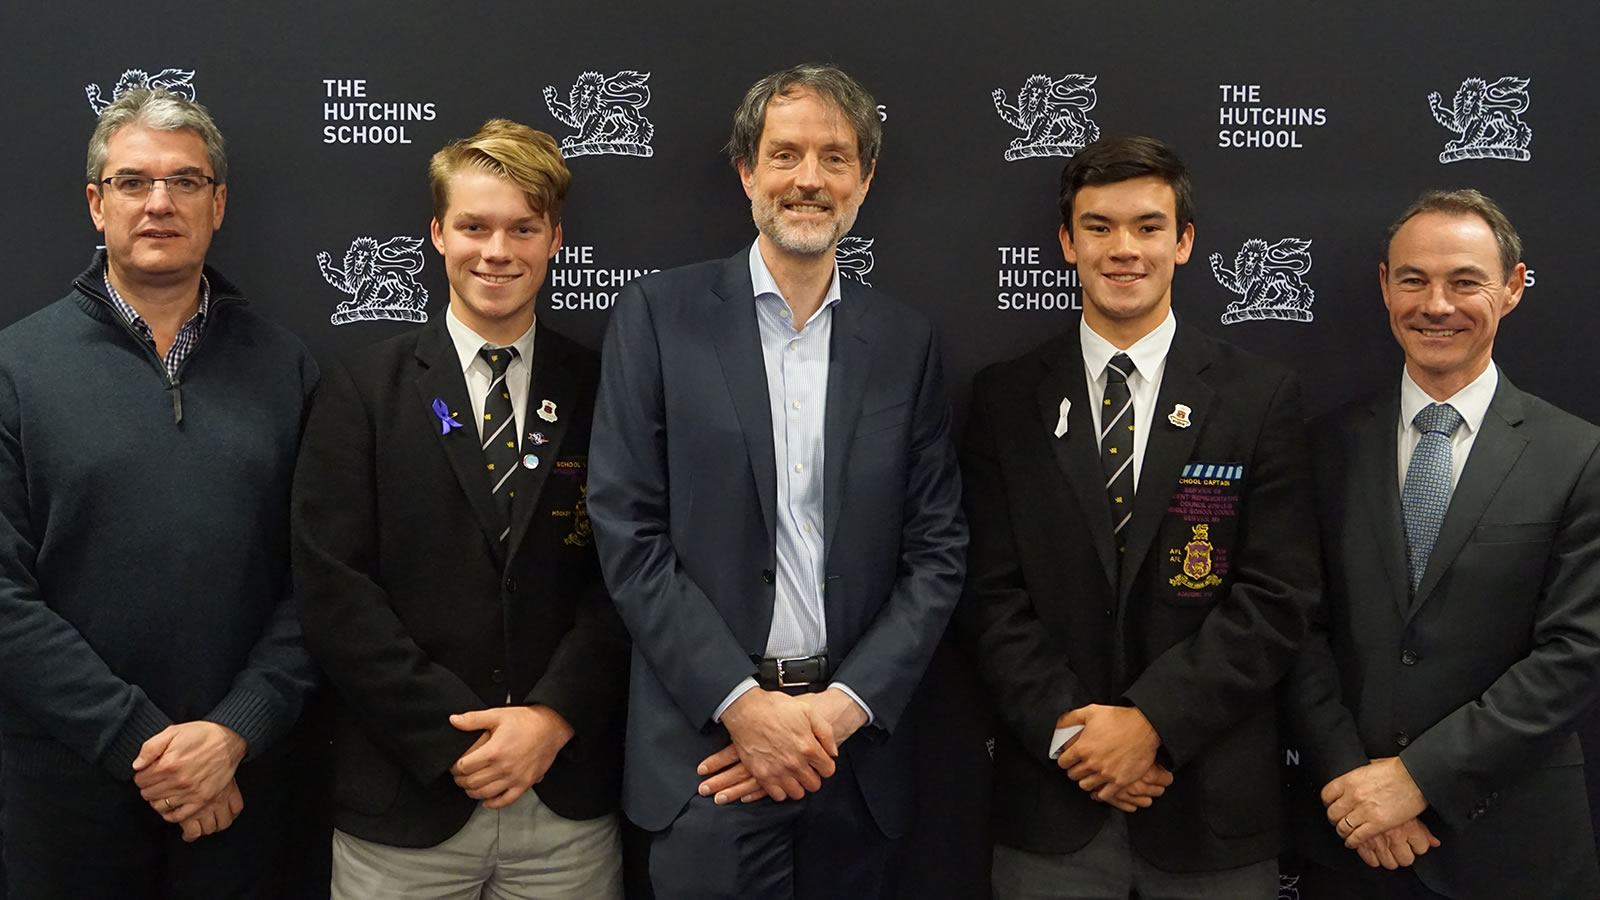 L–R Mr Gene Phair (Chairman of the Board), Alex Hogan-Jones (School Vice-Captain), Professor Rufus Black, Oliver Burrows-Cheng (School Captain), Dr Rob McEwan (Headmaster).